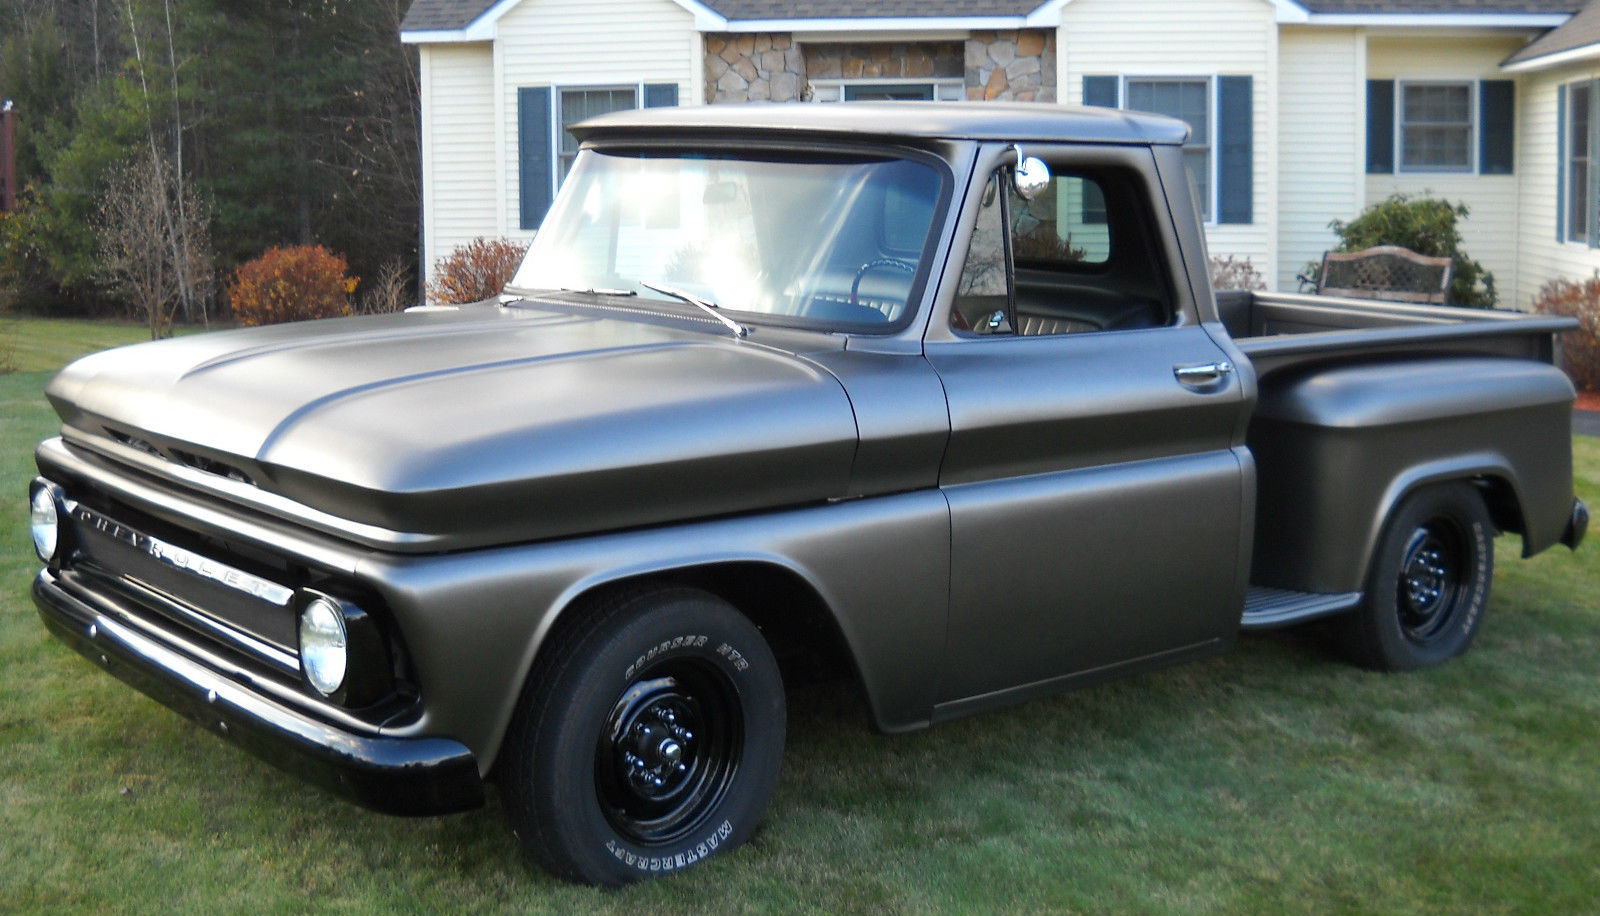 1966 Chevy C10 Built by Krazy Kustoms